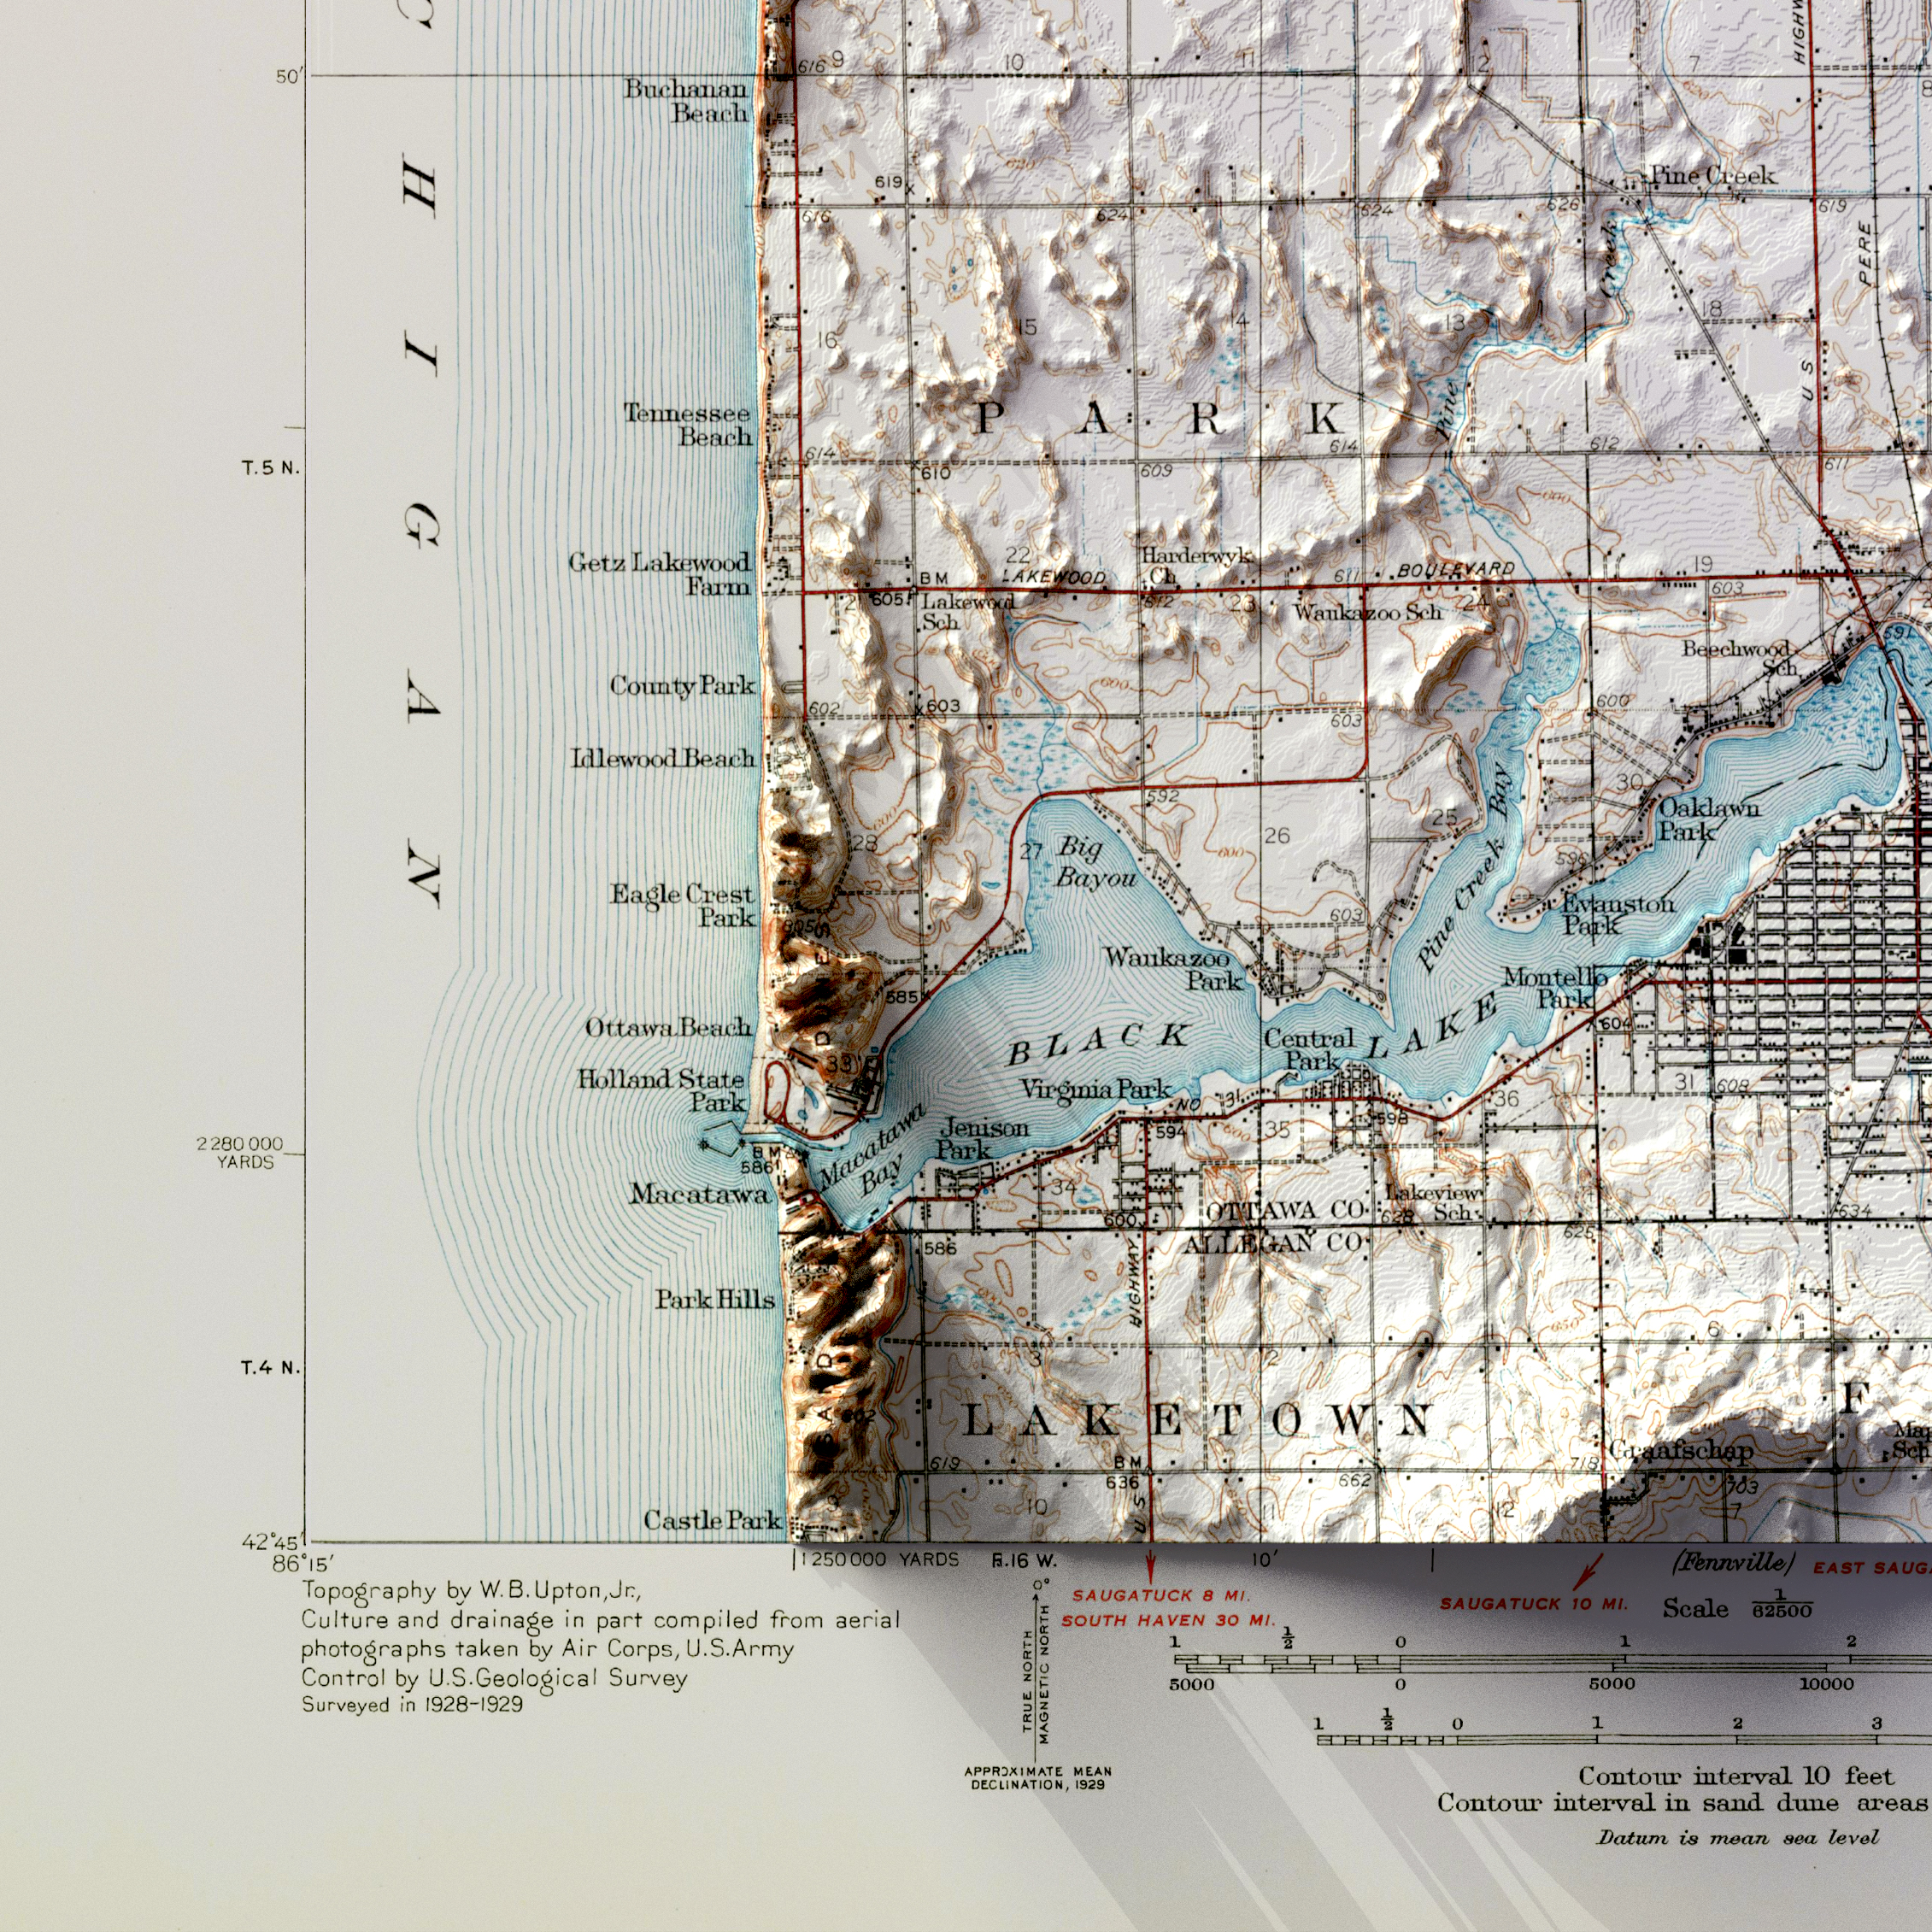 topo render w USGS historic map-1